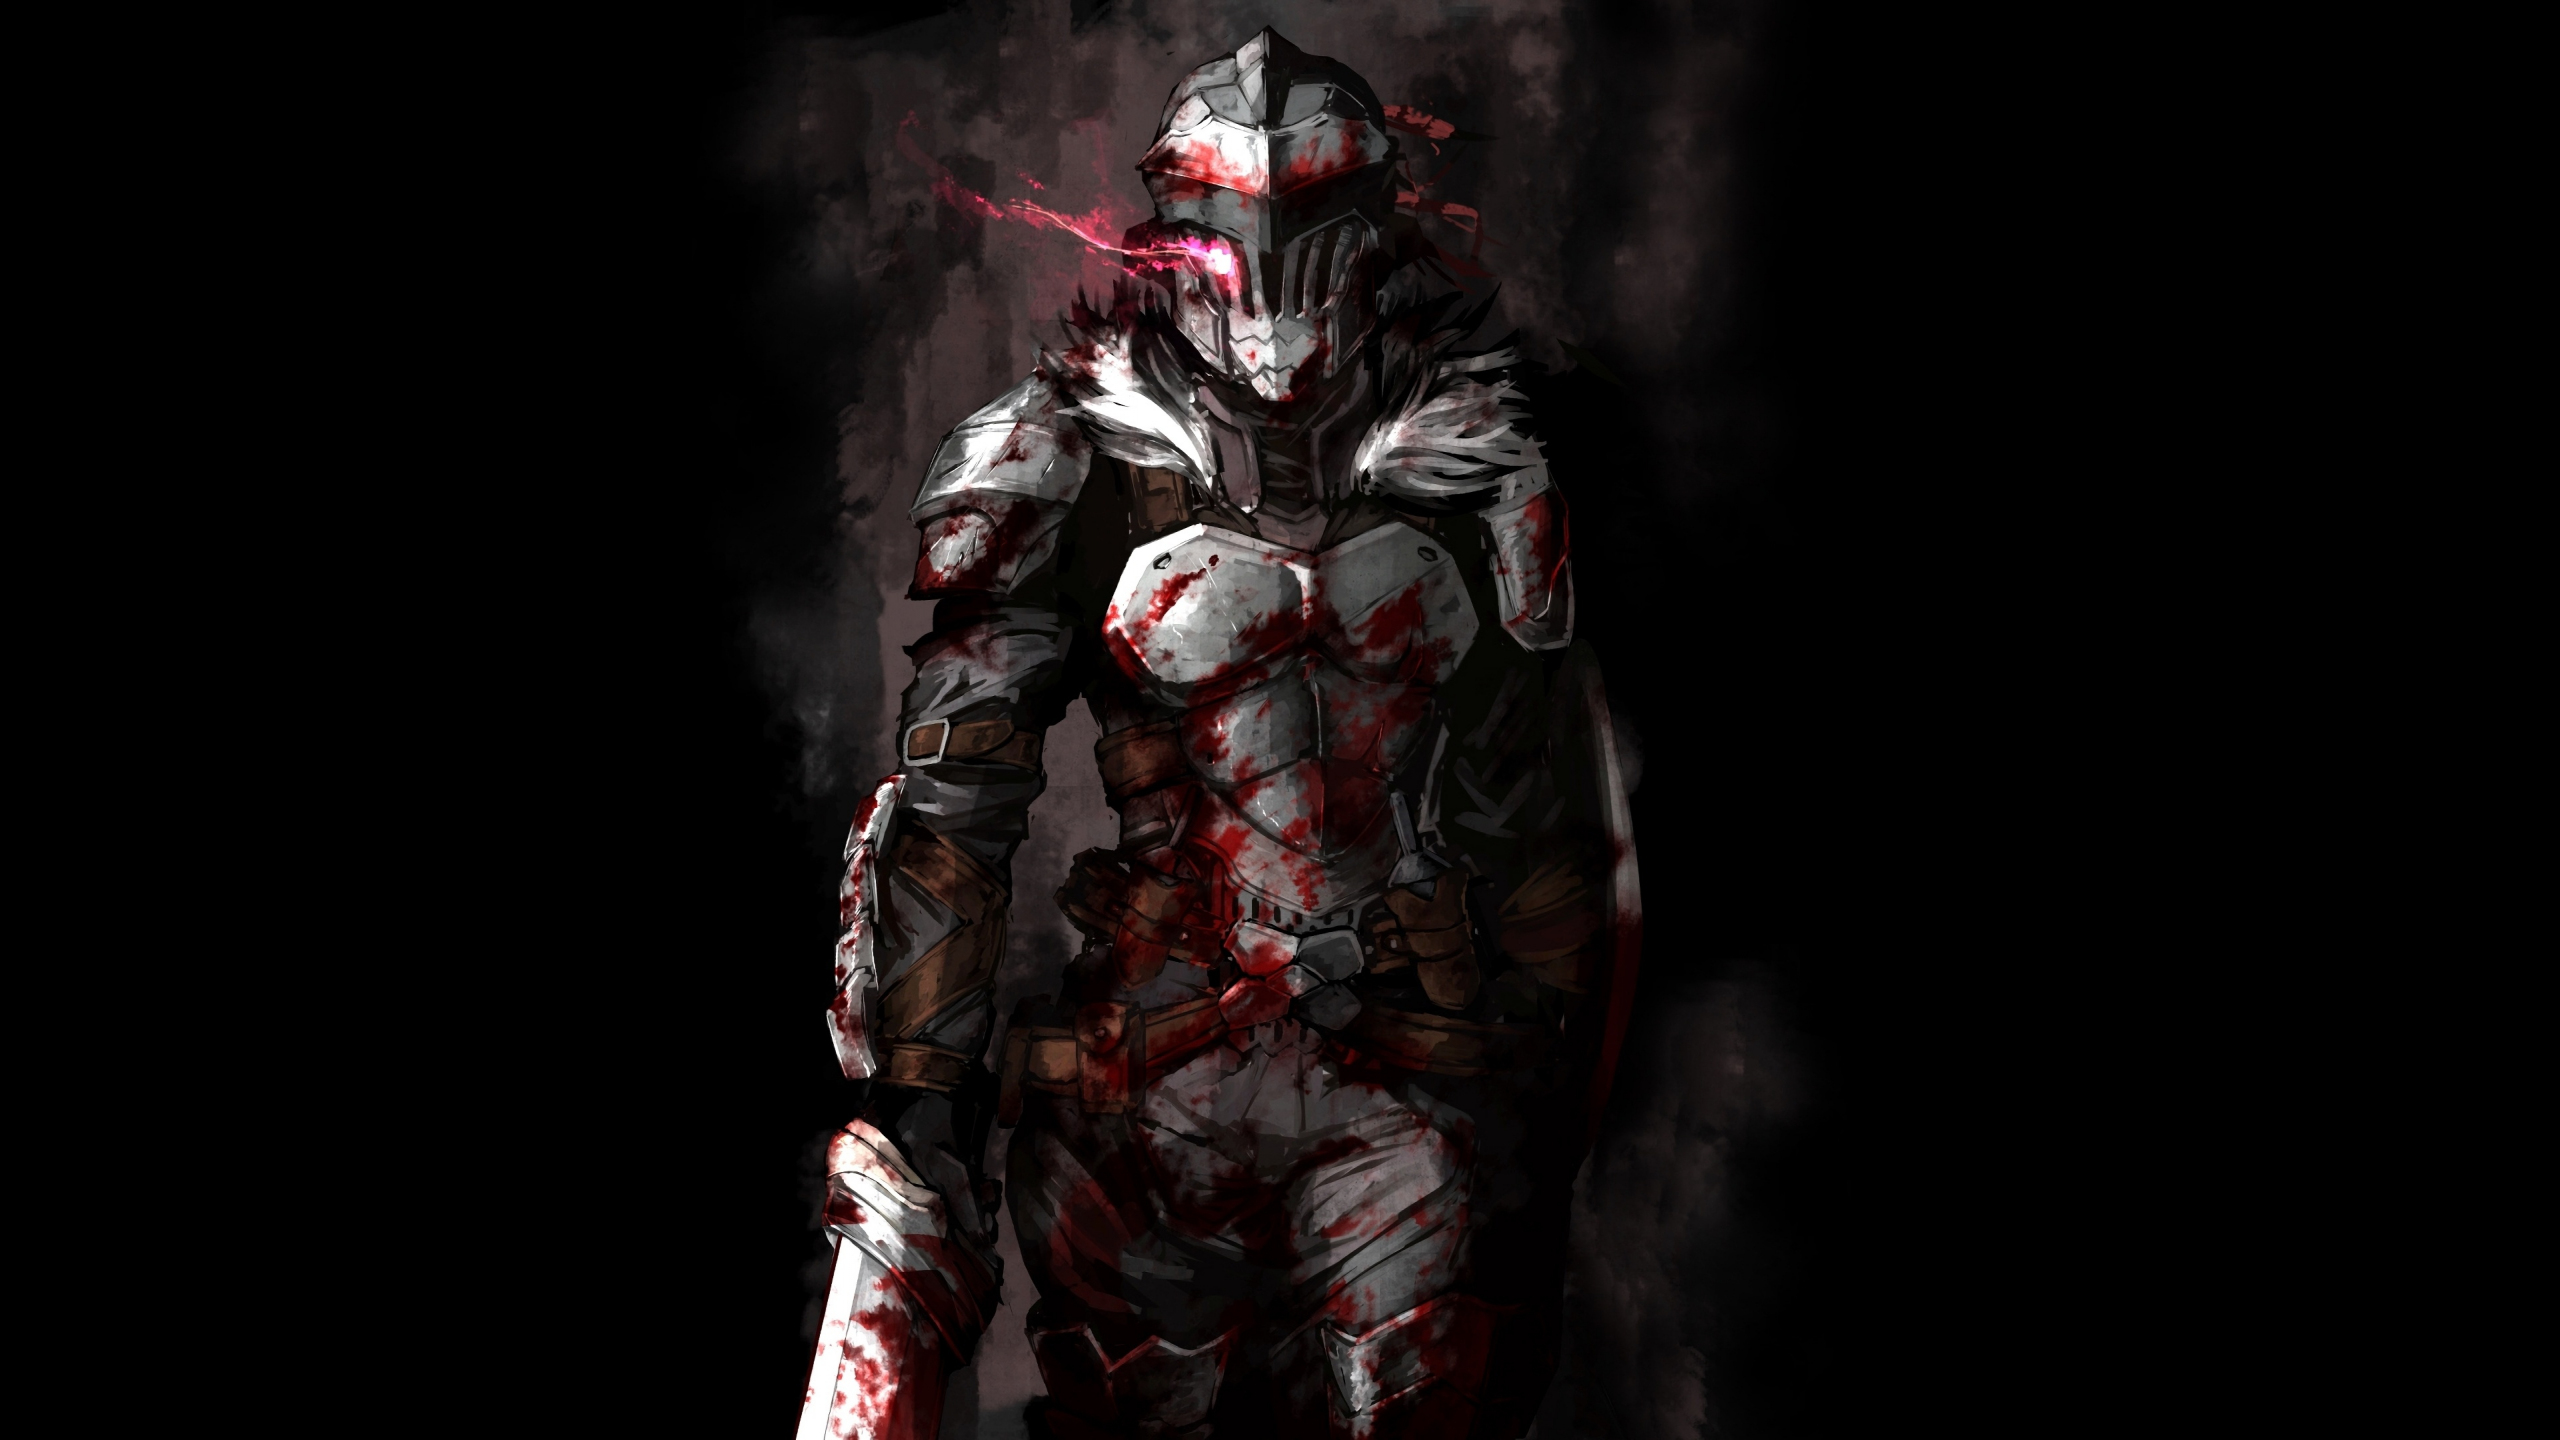 Download 2560x1440 wallpaper wounded, goblin slayer ...